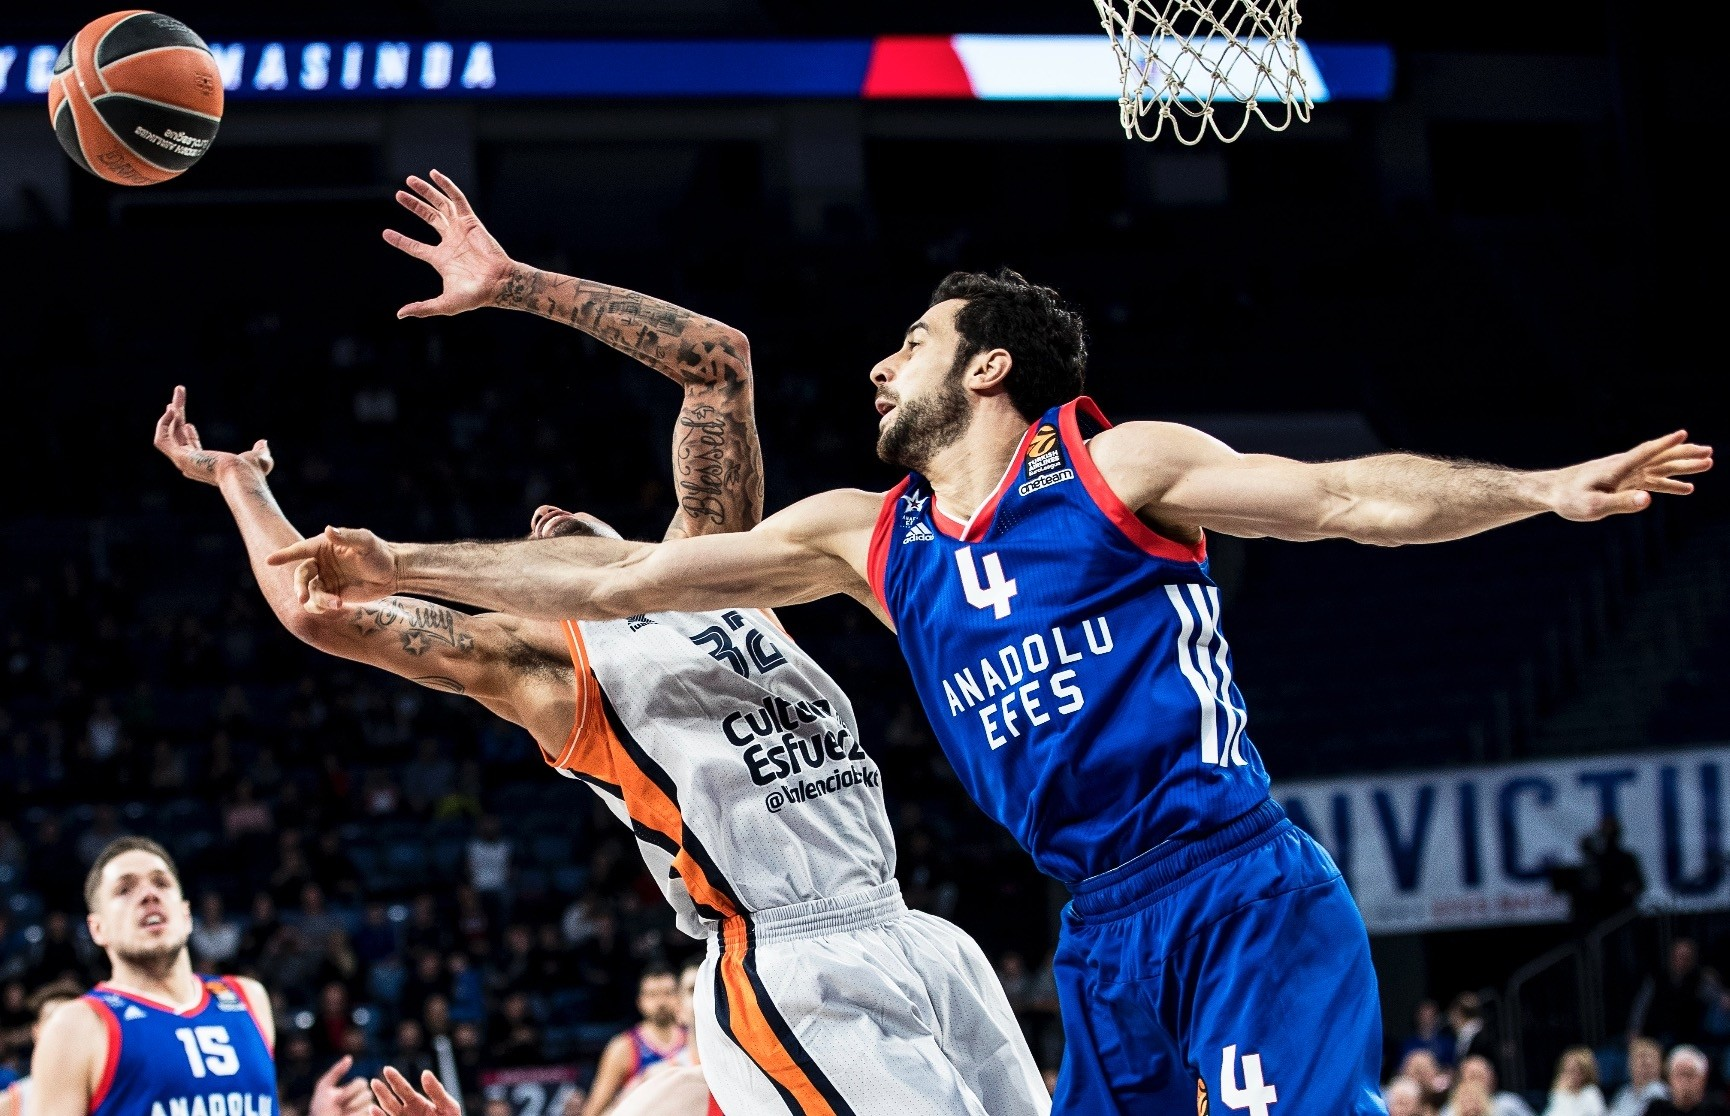 Valenciau2019s Erick Green (L) in action against Anadolu Efesu2019s Dou011fuu015f Balbay (R) during the Euroleague basketball game in the 21st round.